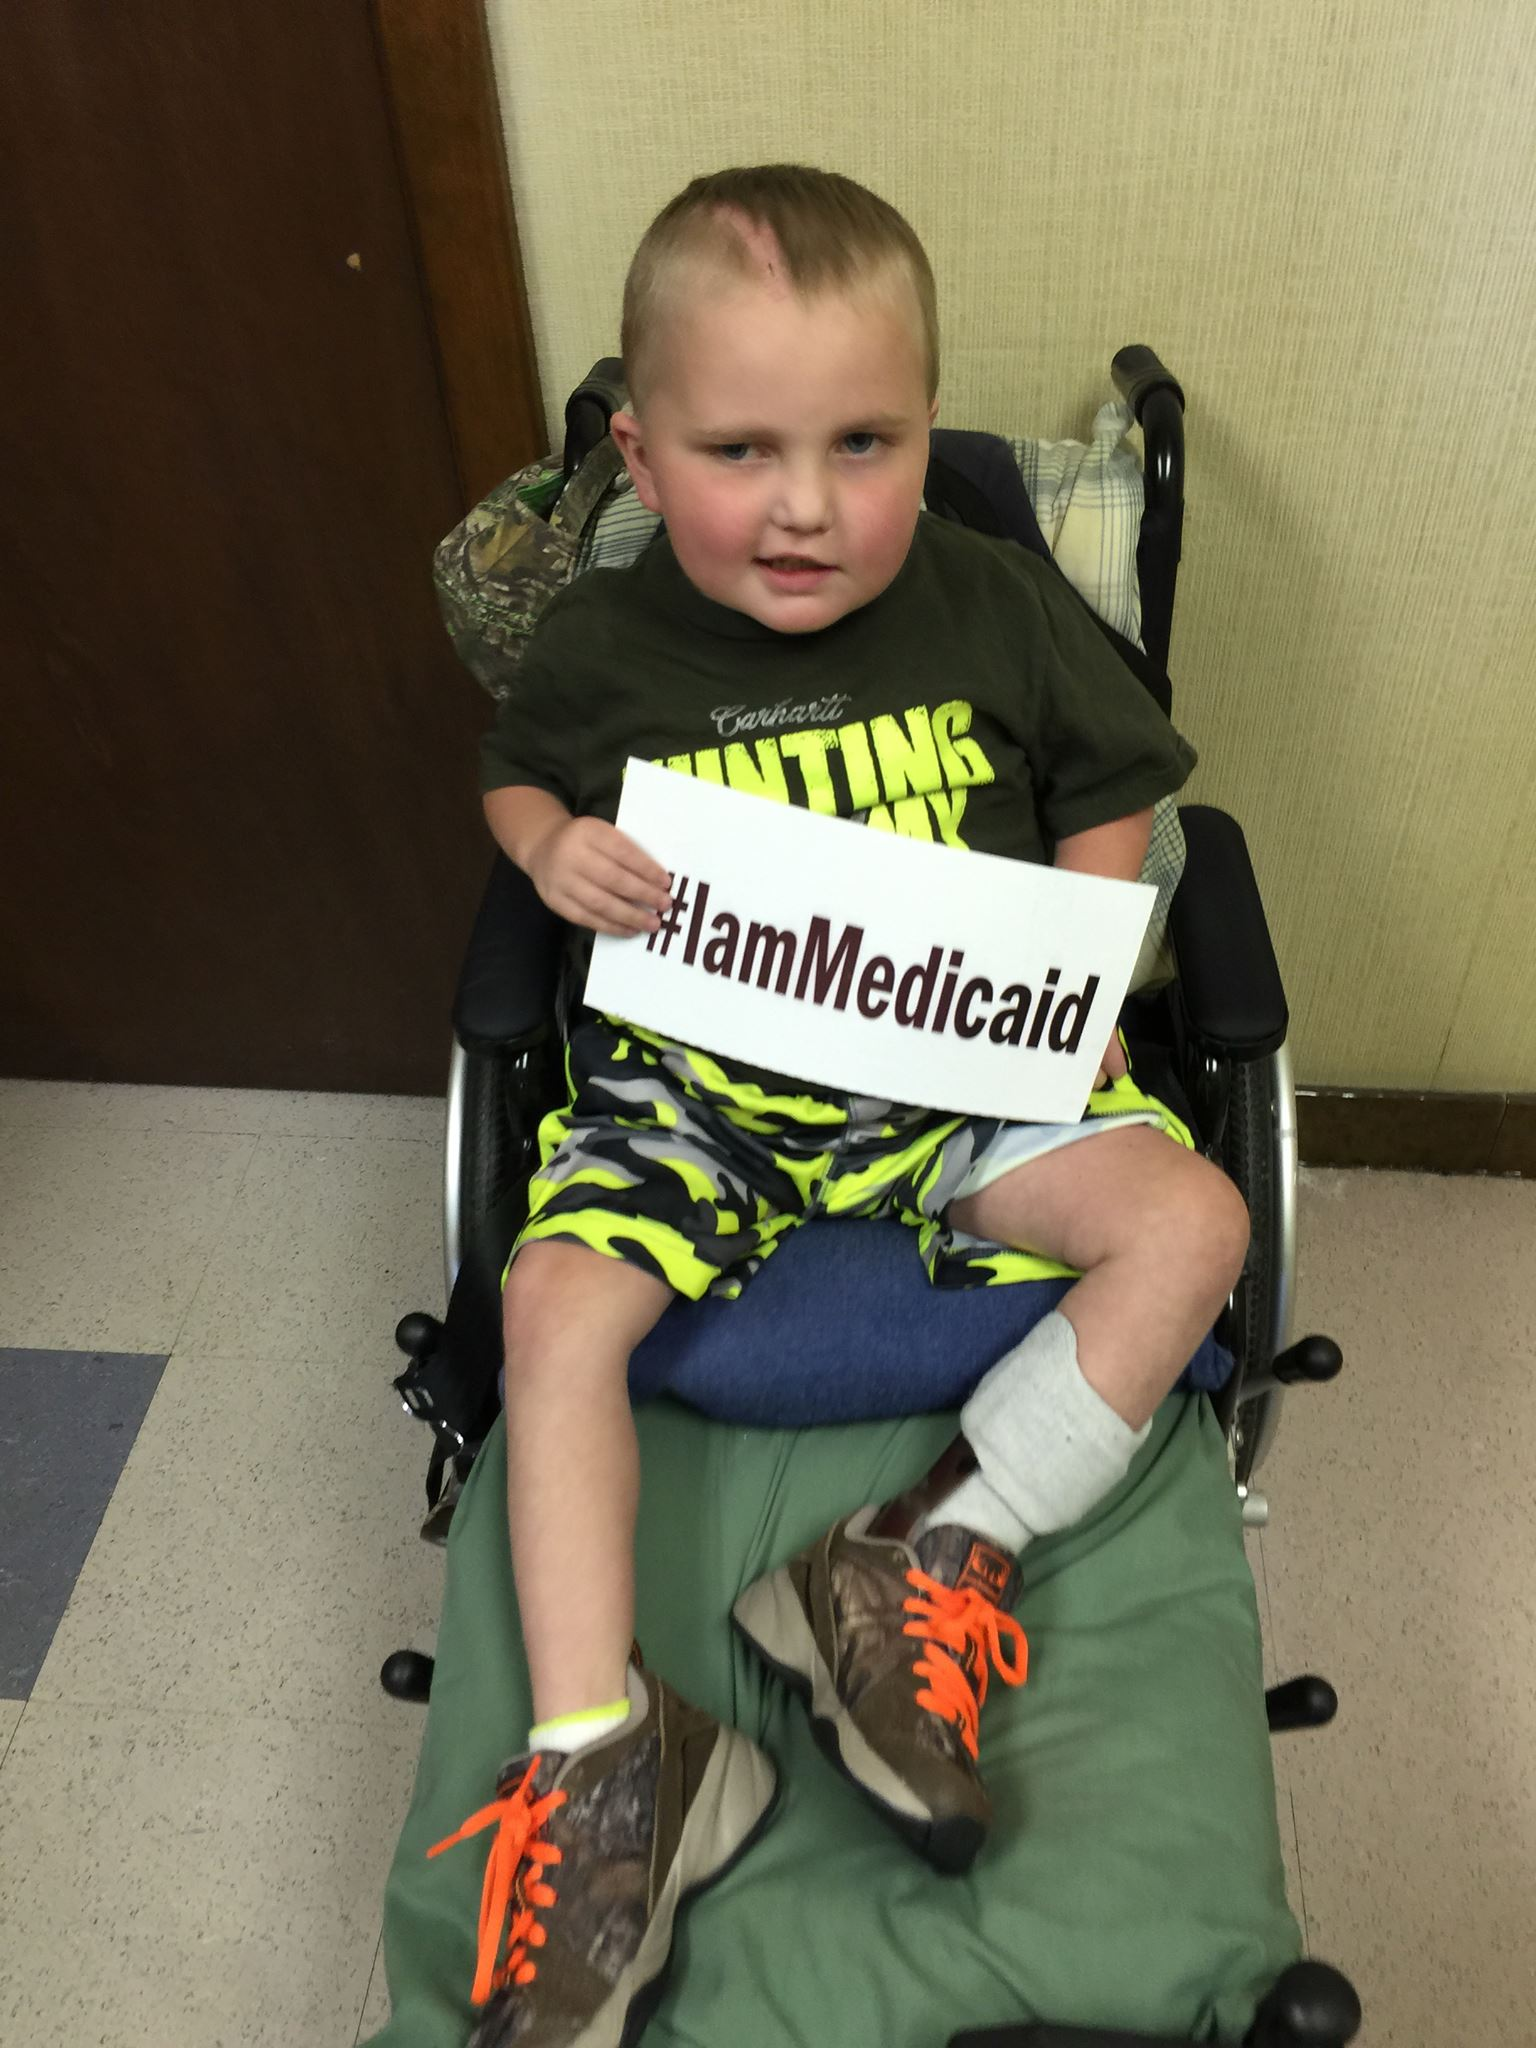 I have Hirschsprungs Syndrome, short-gut and am recovering from brain surgery after having a CNS infection. I am doing great now thanks to Medicaid! ‪#‎IamMedicaid